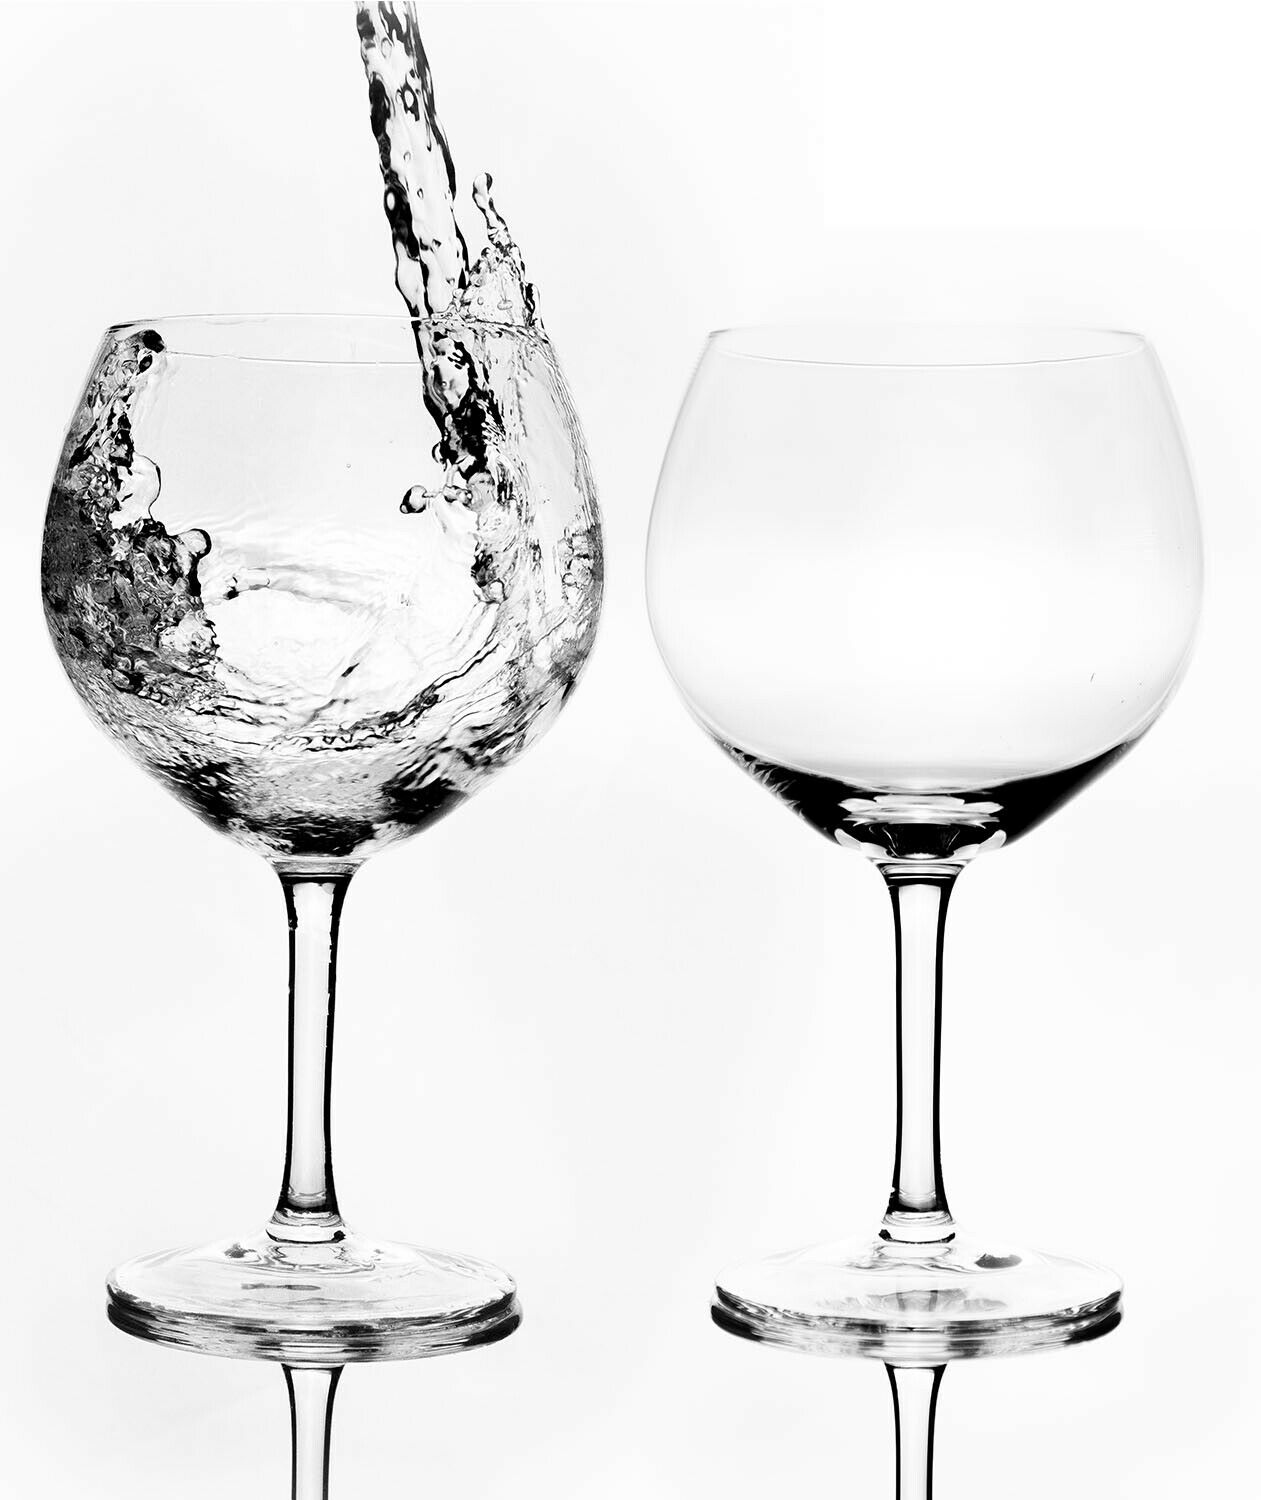 Pack of 2 Glasses that are both stylish and durable.